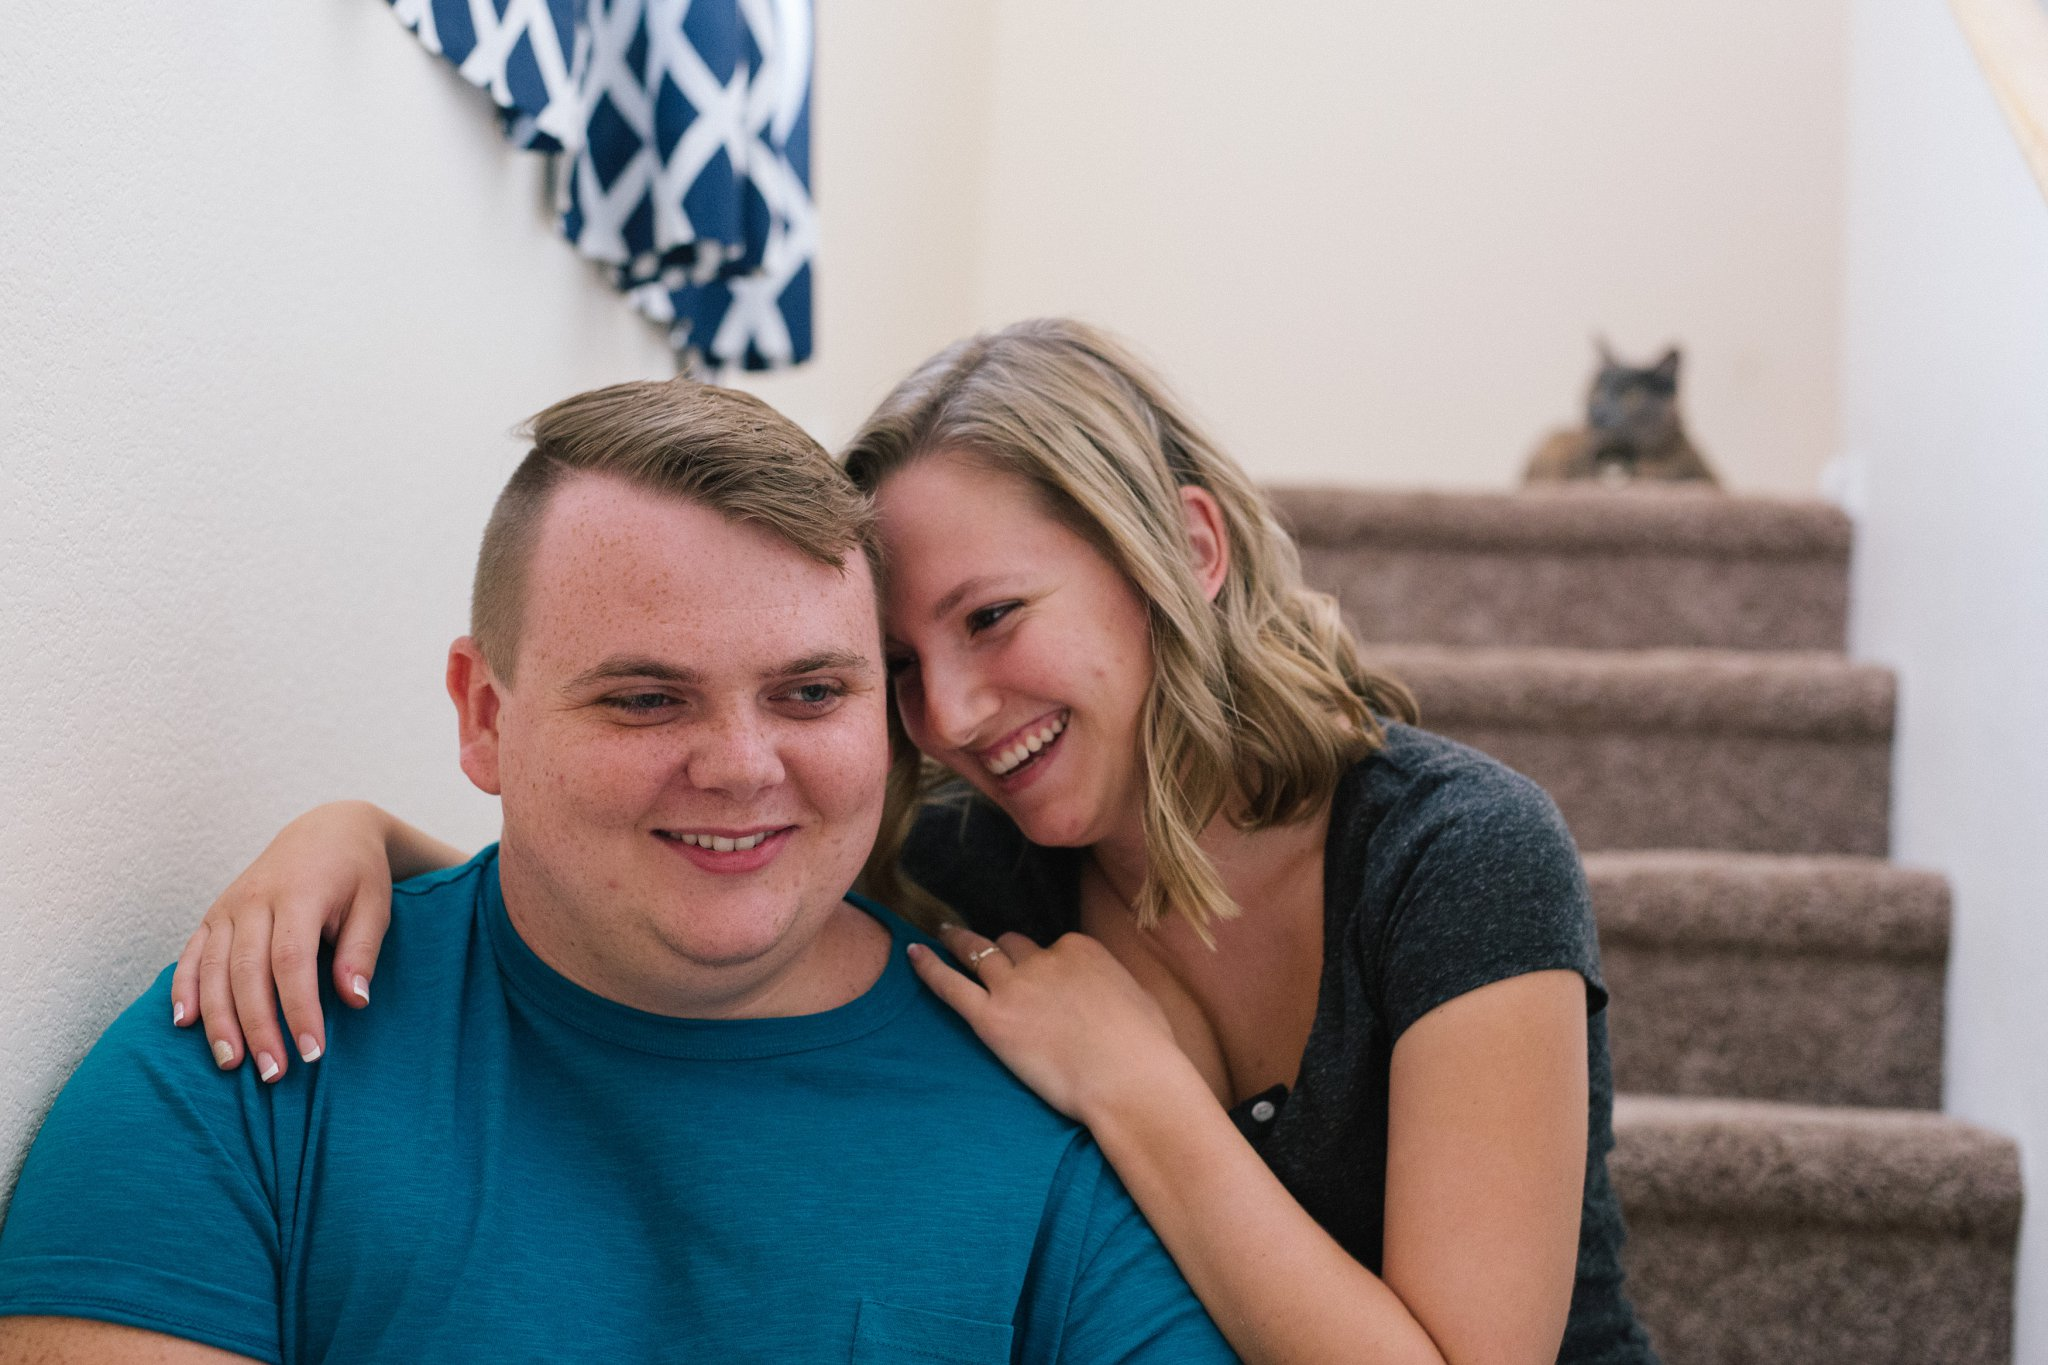 engagement photos in an apartment with a cat Tempe engagement photographer